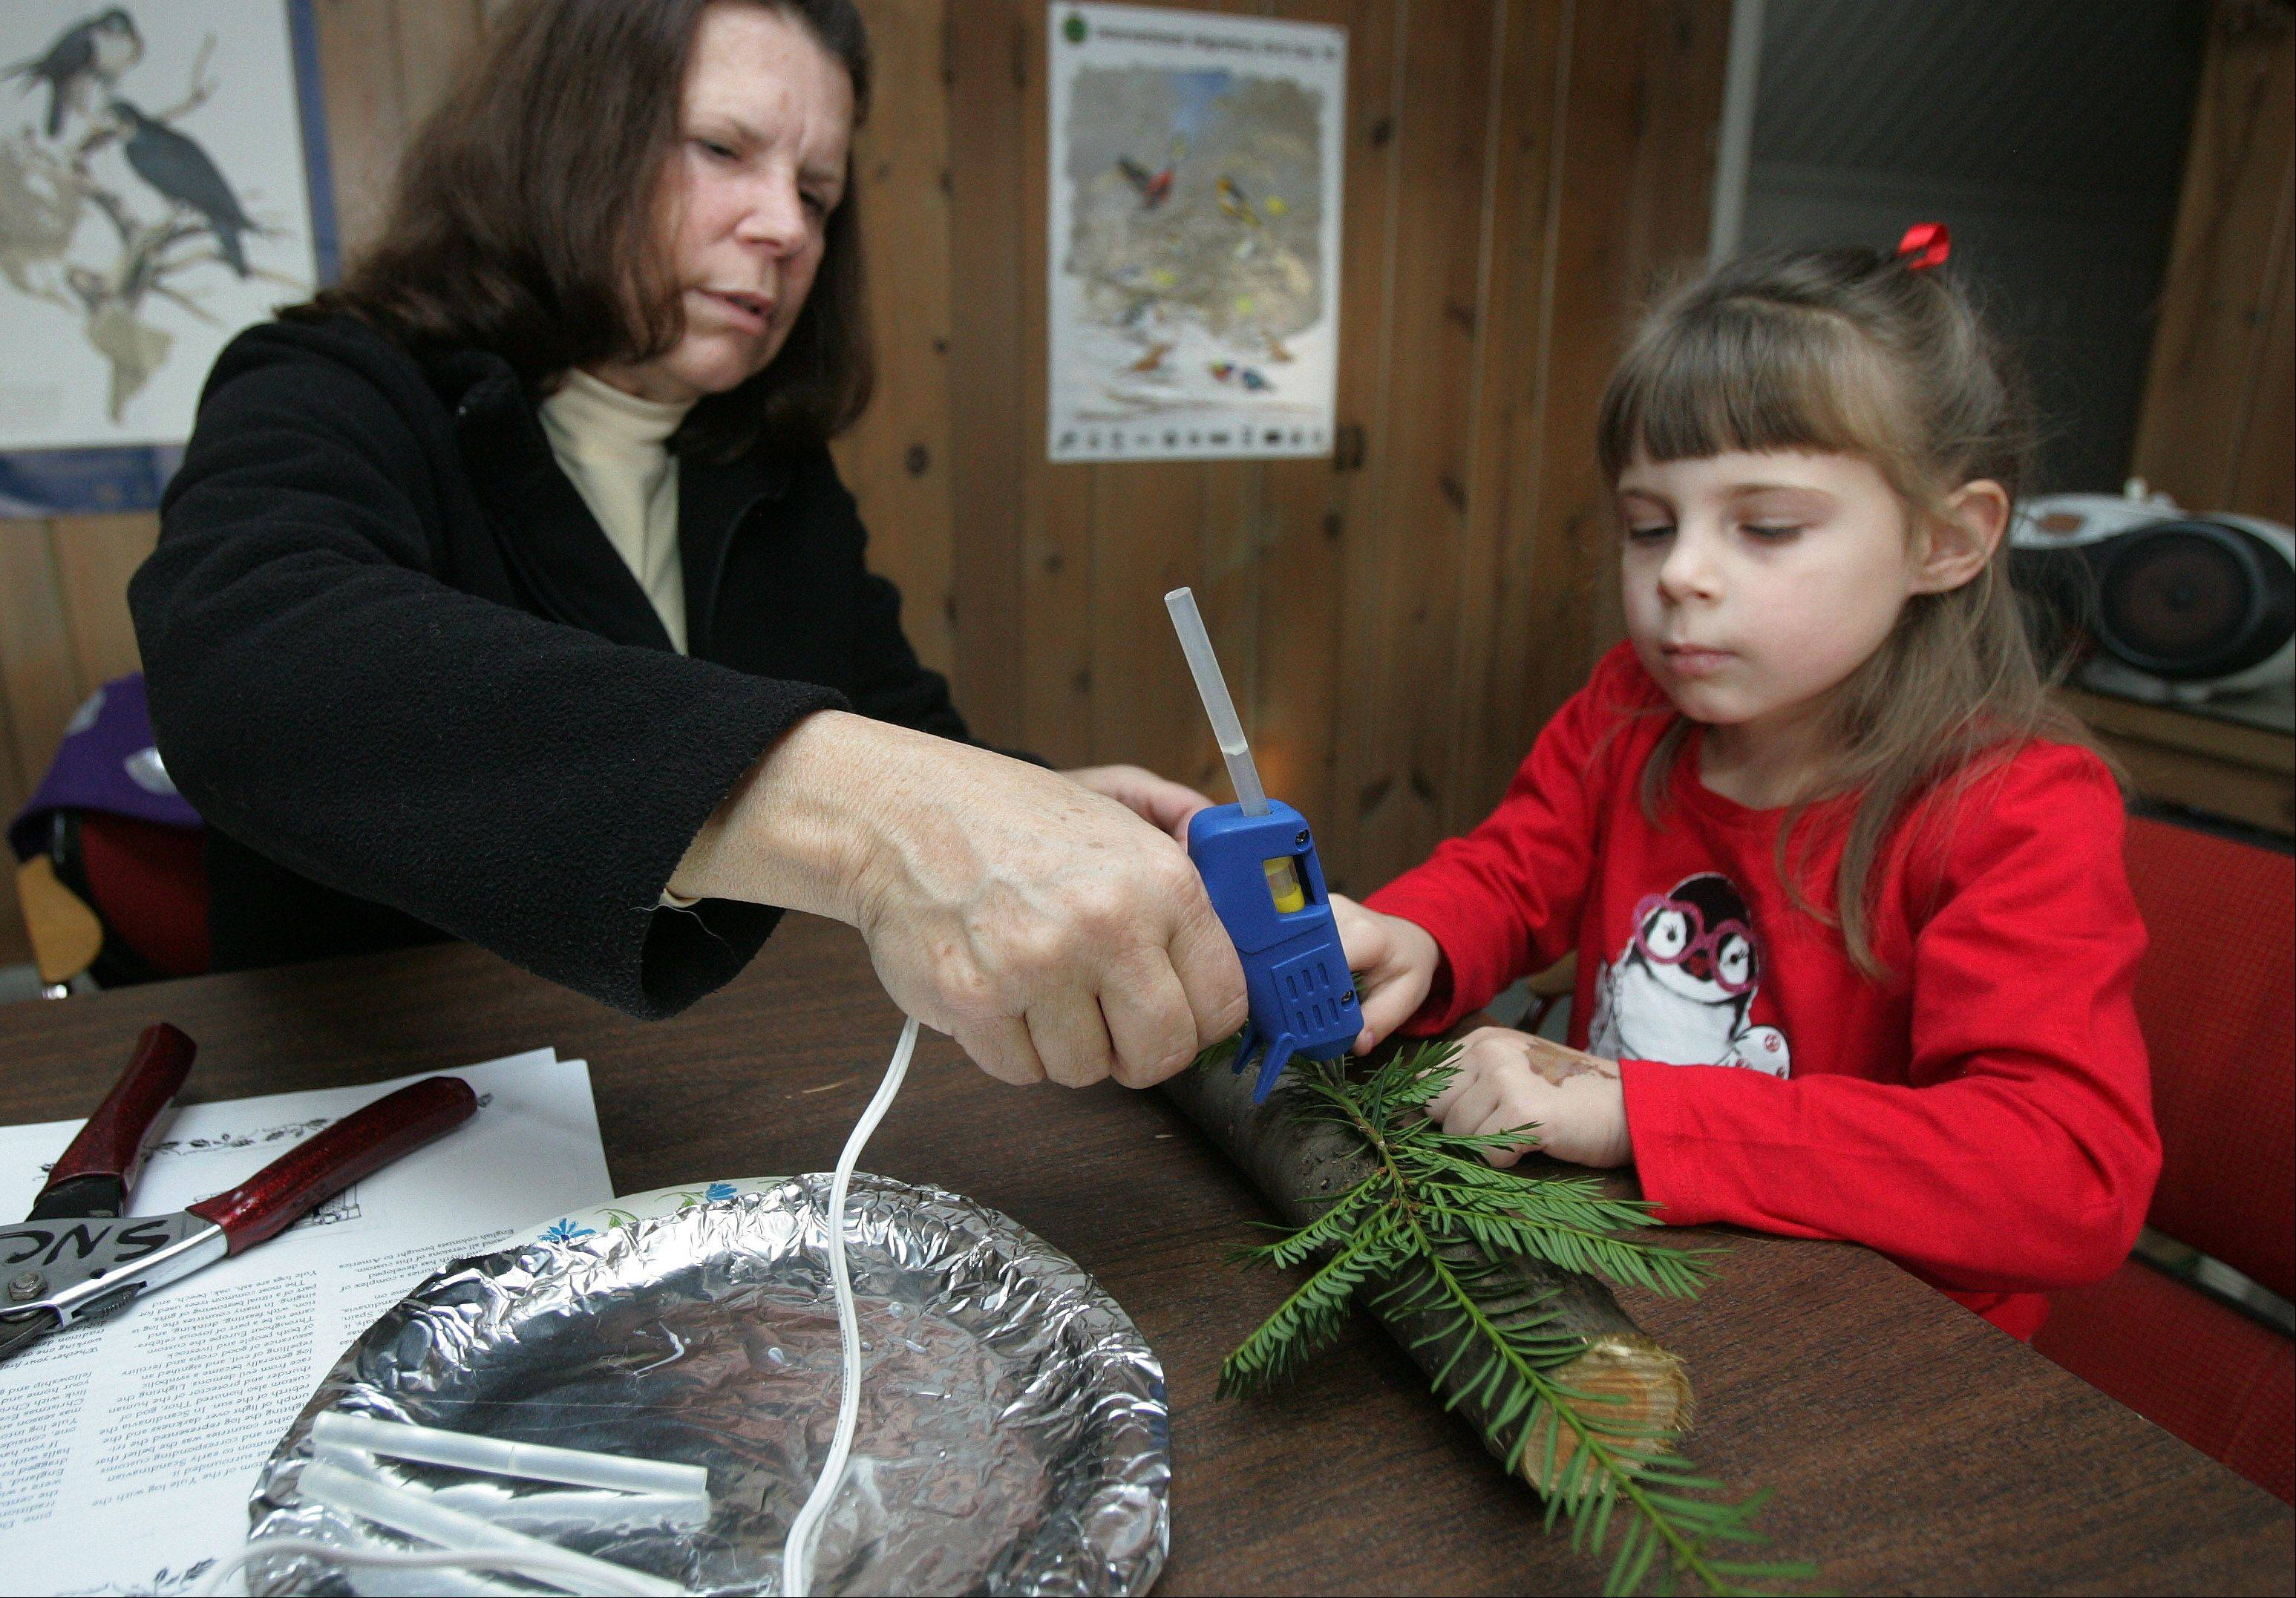 Laura Thome, of Algonquin, helps her granddaughter, Kayleigh DeGeorge, 4, put ornaments on her Yule log during the Yule Log Open House Sunday at the Stillman Nature Center in South Barrington. Visitors learned to make festive yule logs for decorations out of natural materials.